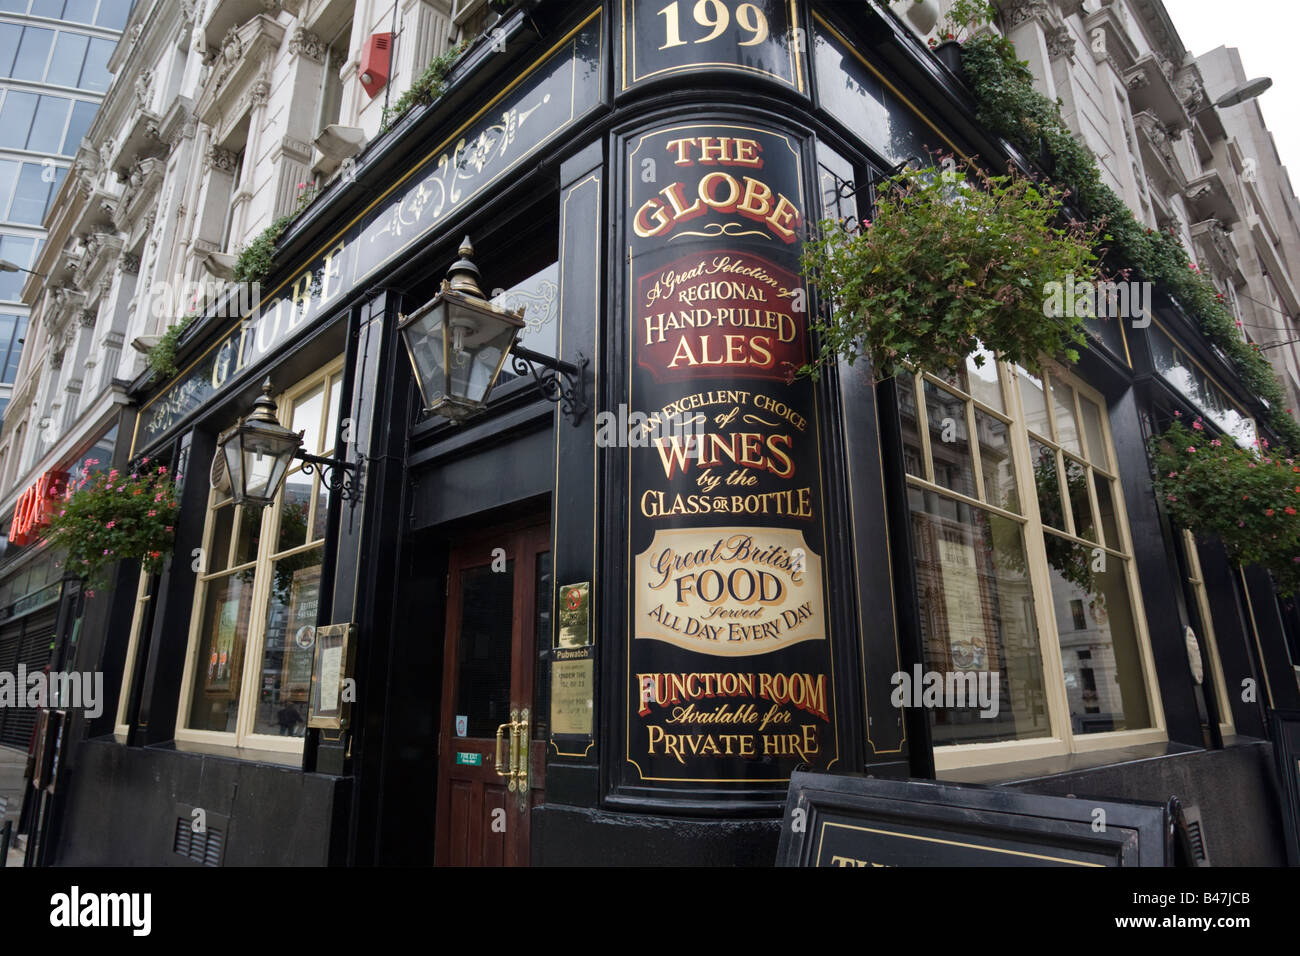 The Globe Public House Moorgate City of London GB UK - Stock Image